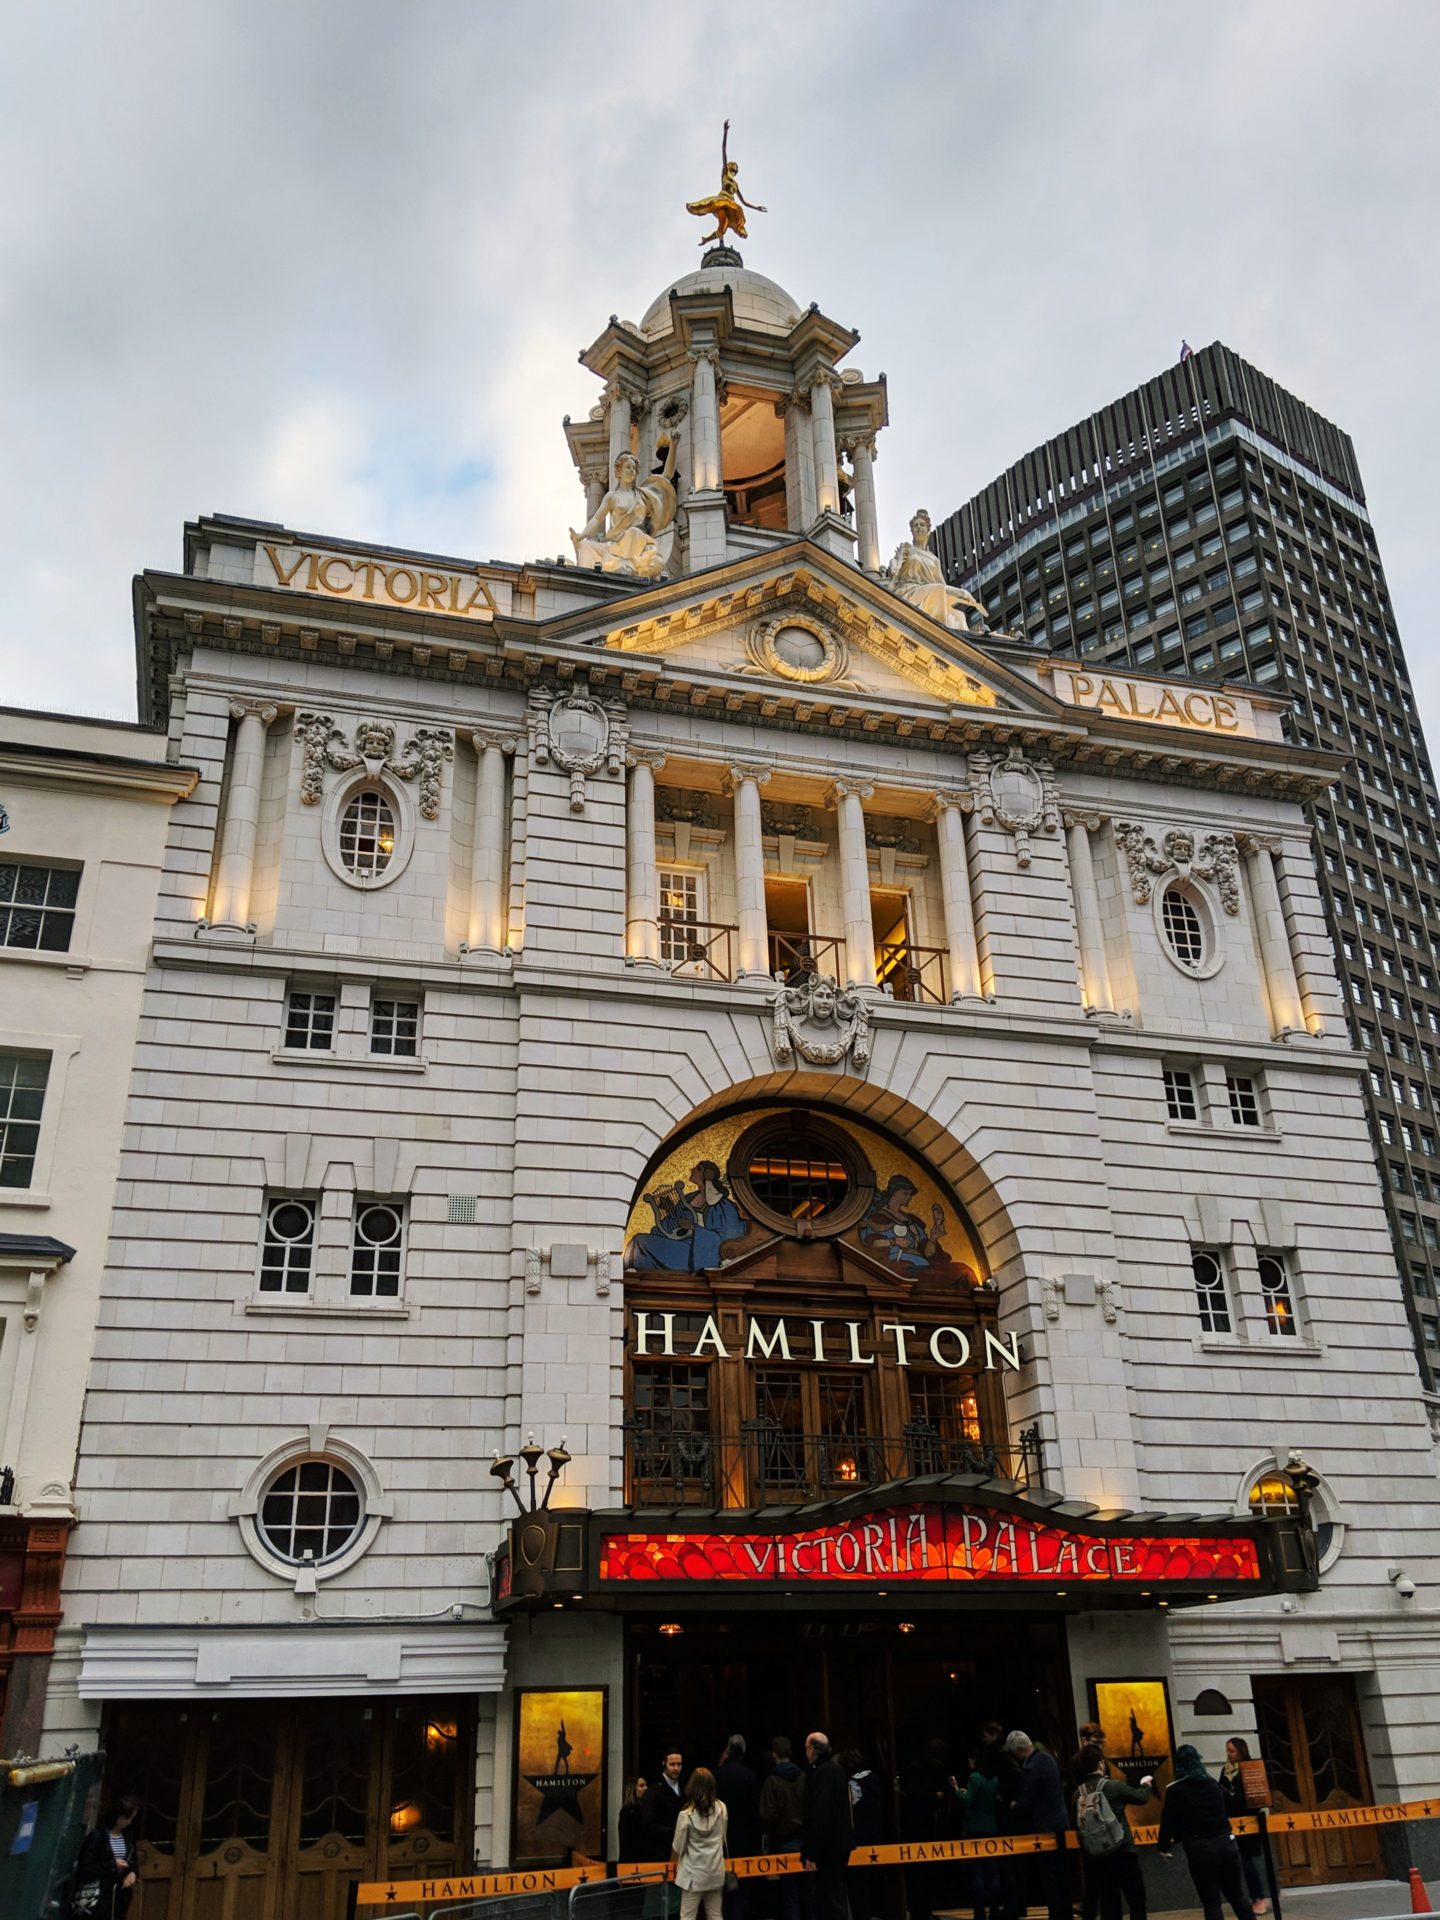 exterior of victoria palace london where the musical hamilton is currently playing